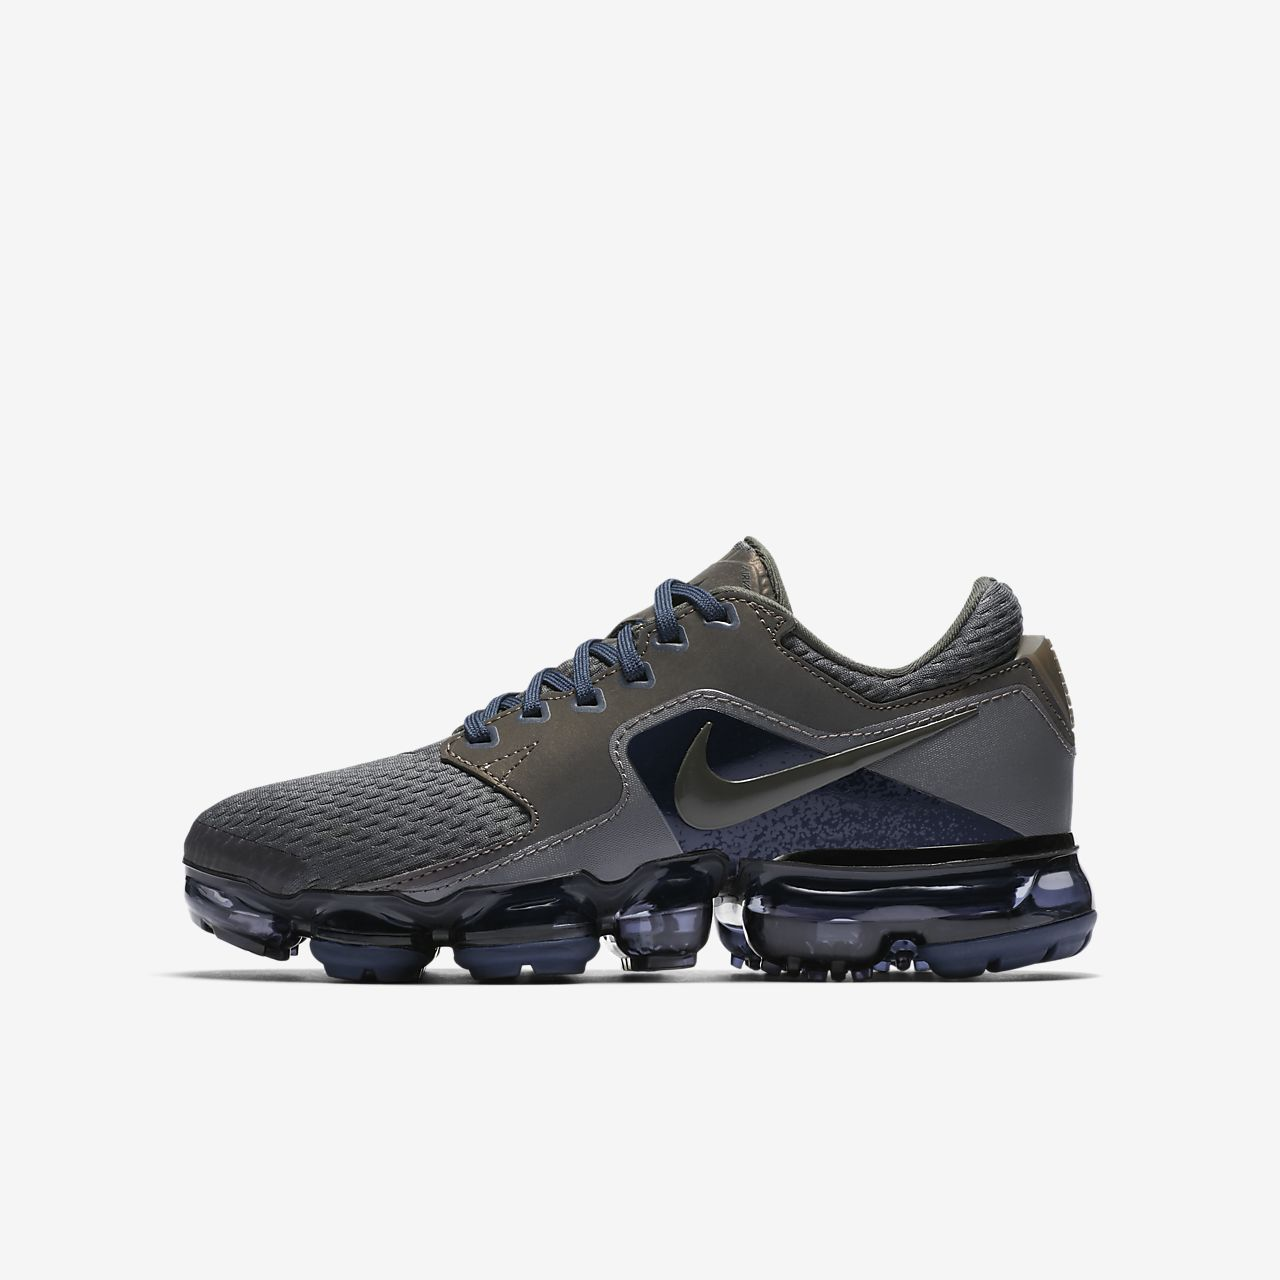 buy online 47db5 bef1d kegunaan nike air max thea skechers slip resistant shoes for women